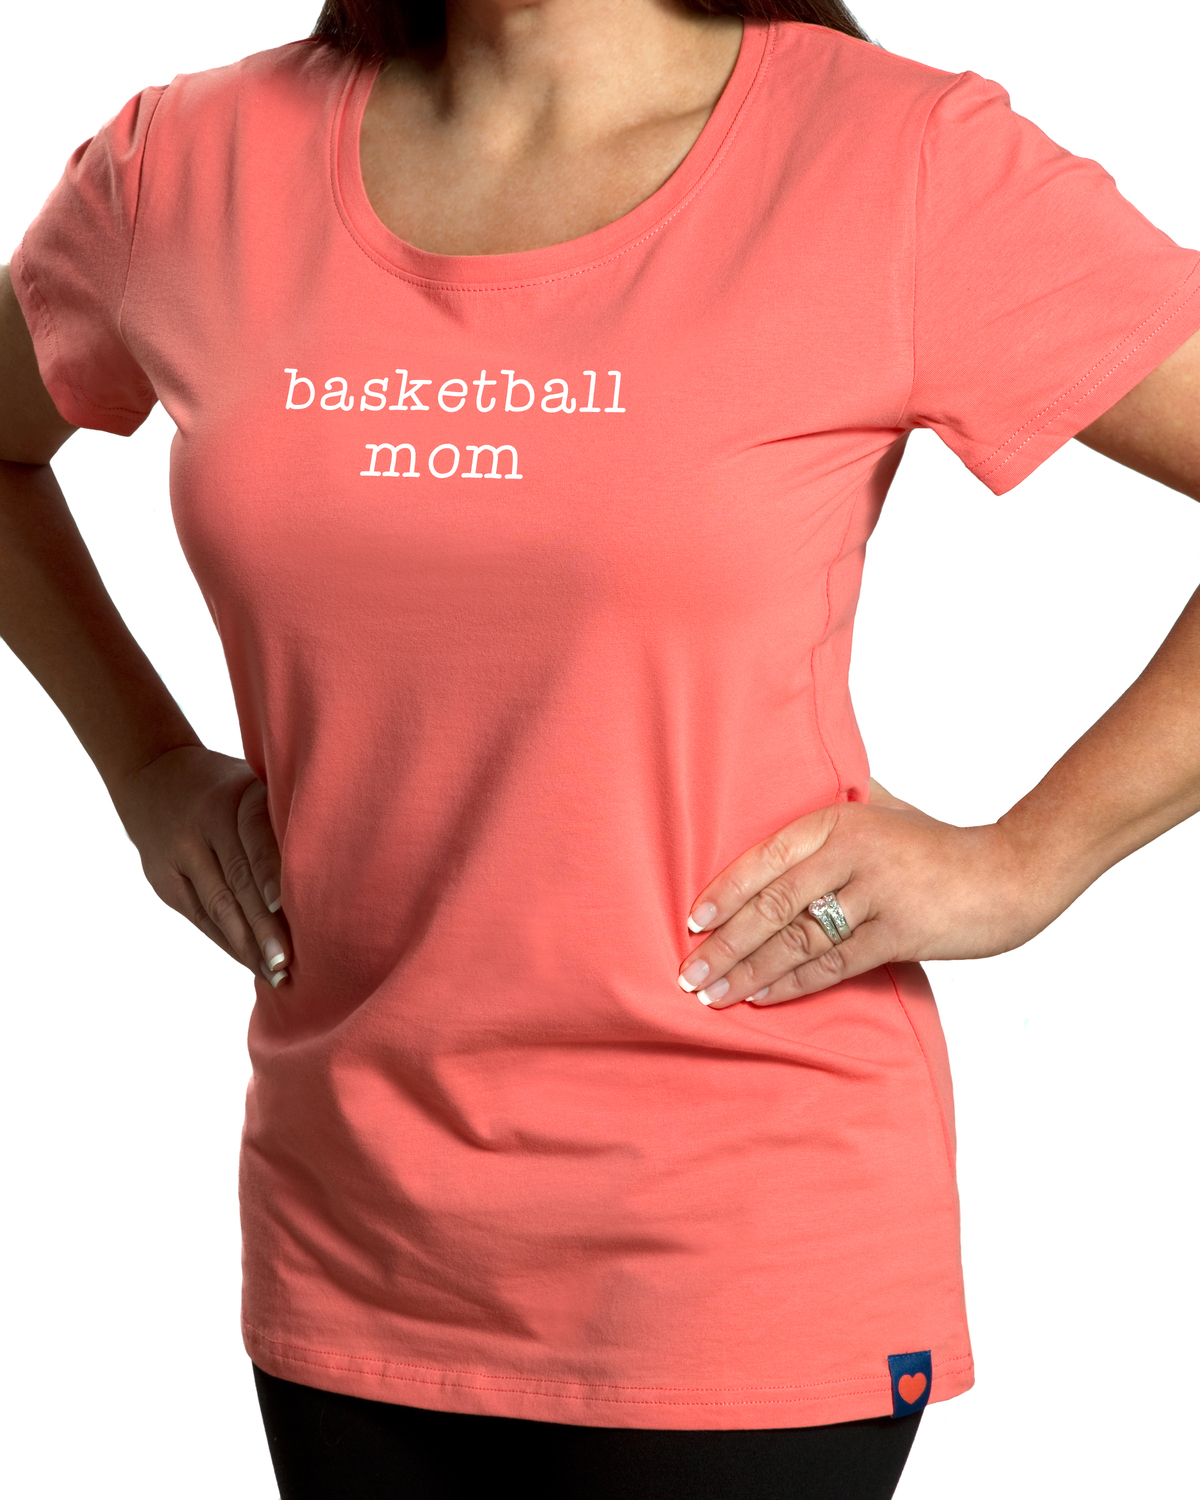 Basketball Mom by Mom Love - Basketball Mom - Small Coral T-Shirt